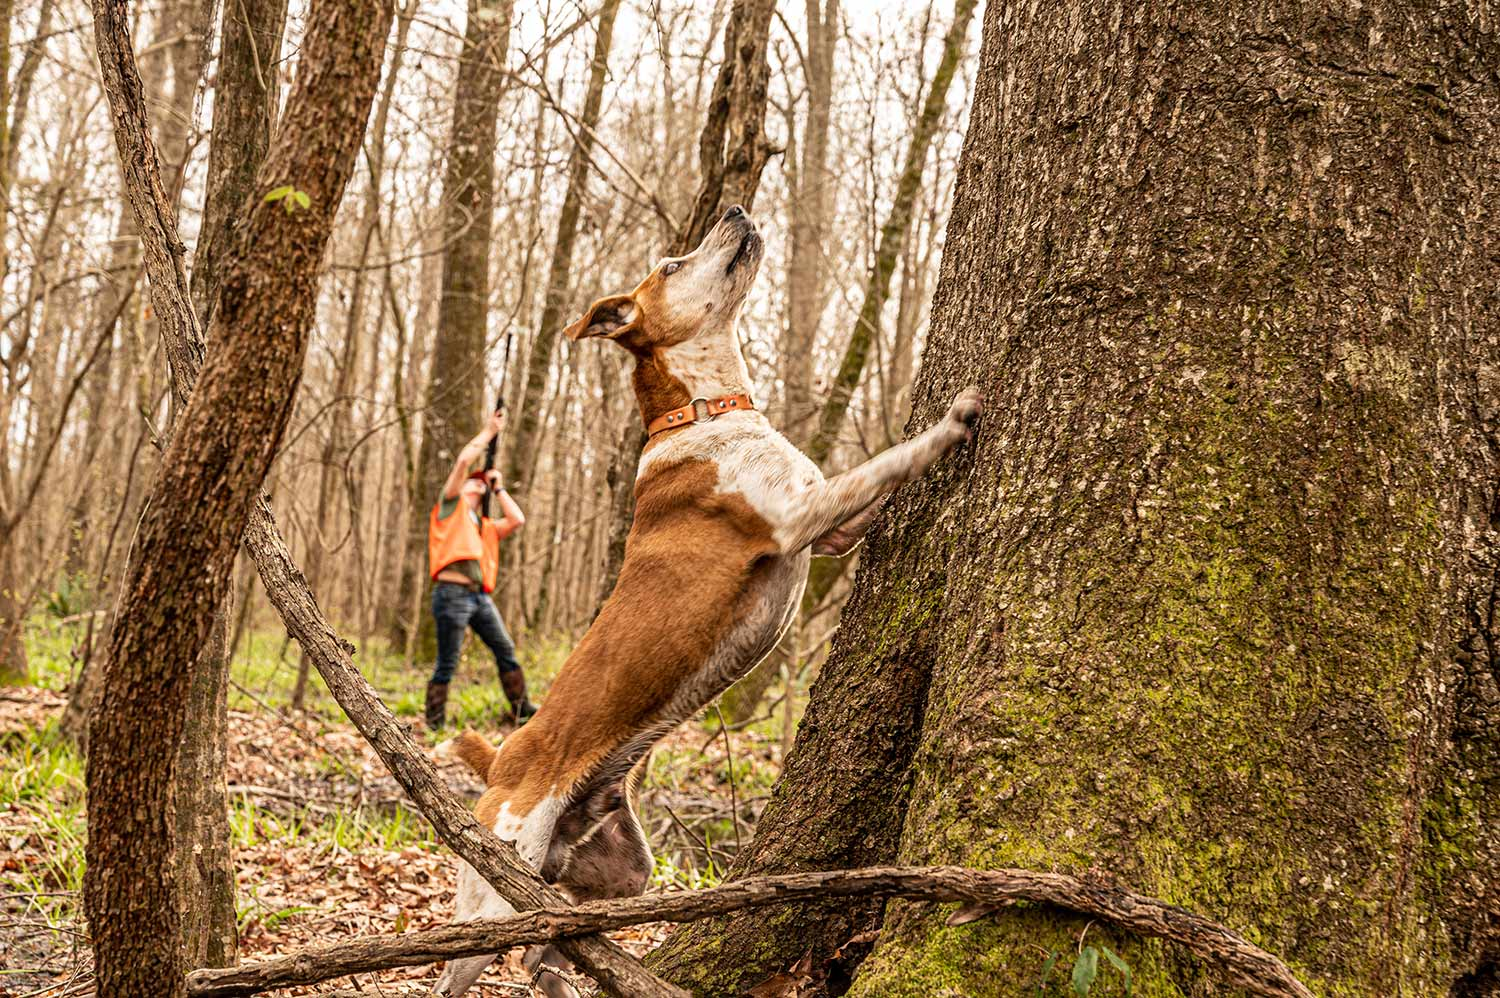 A squirrel hunting dog with front paws on the tree.